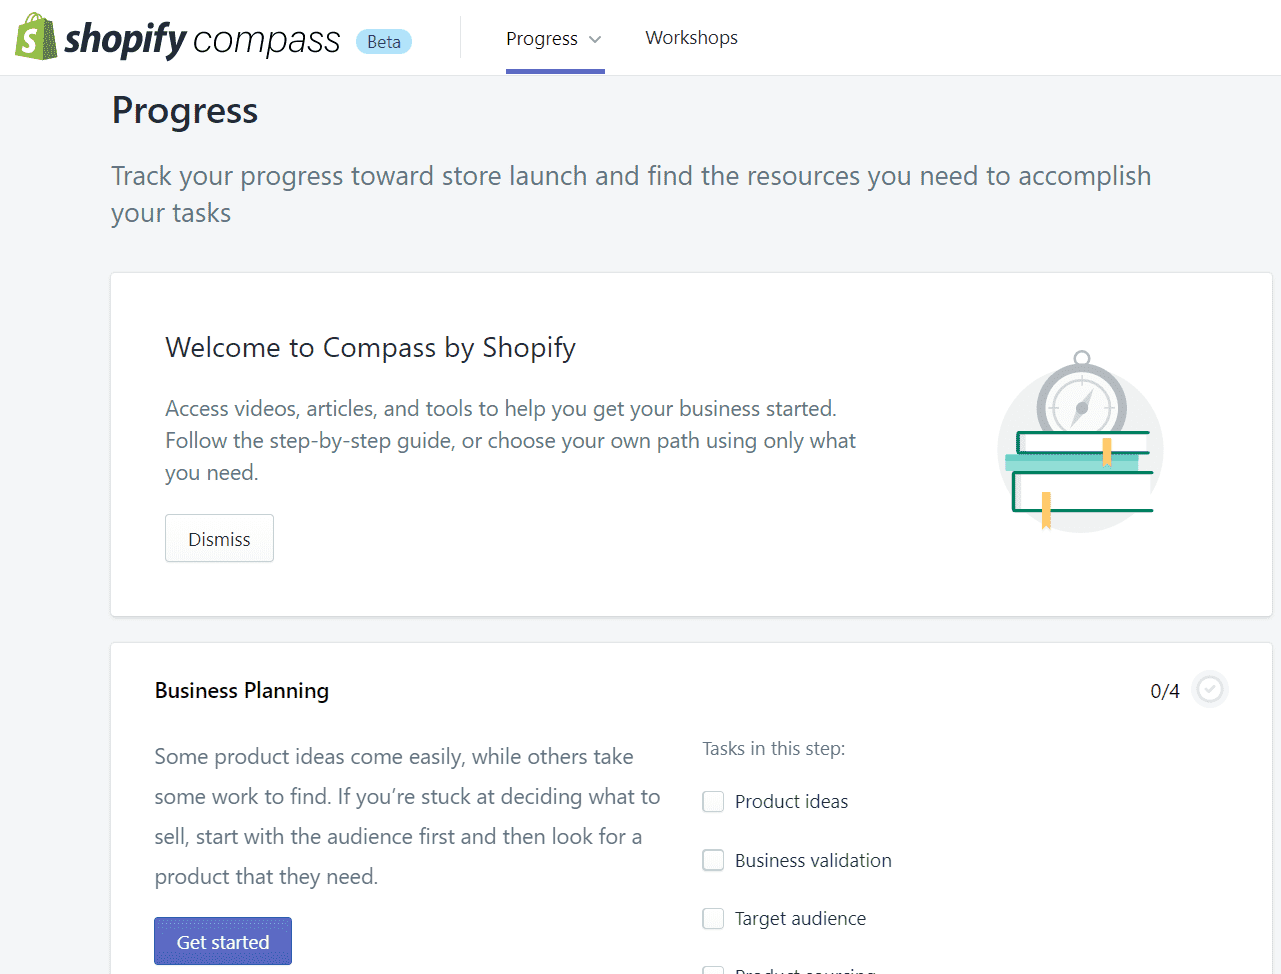 shopify support compass2